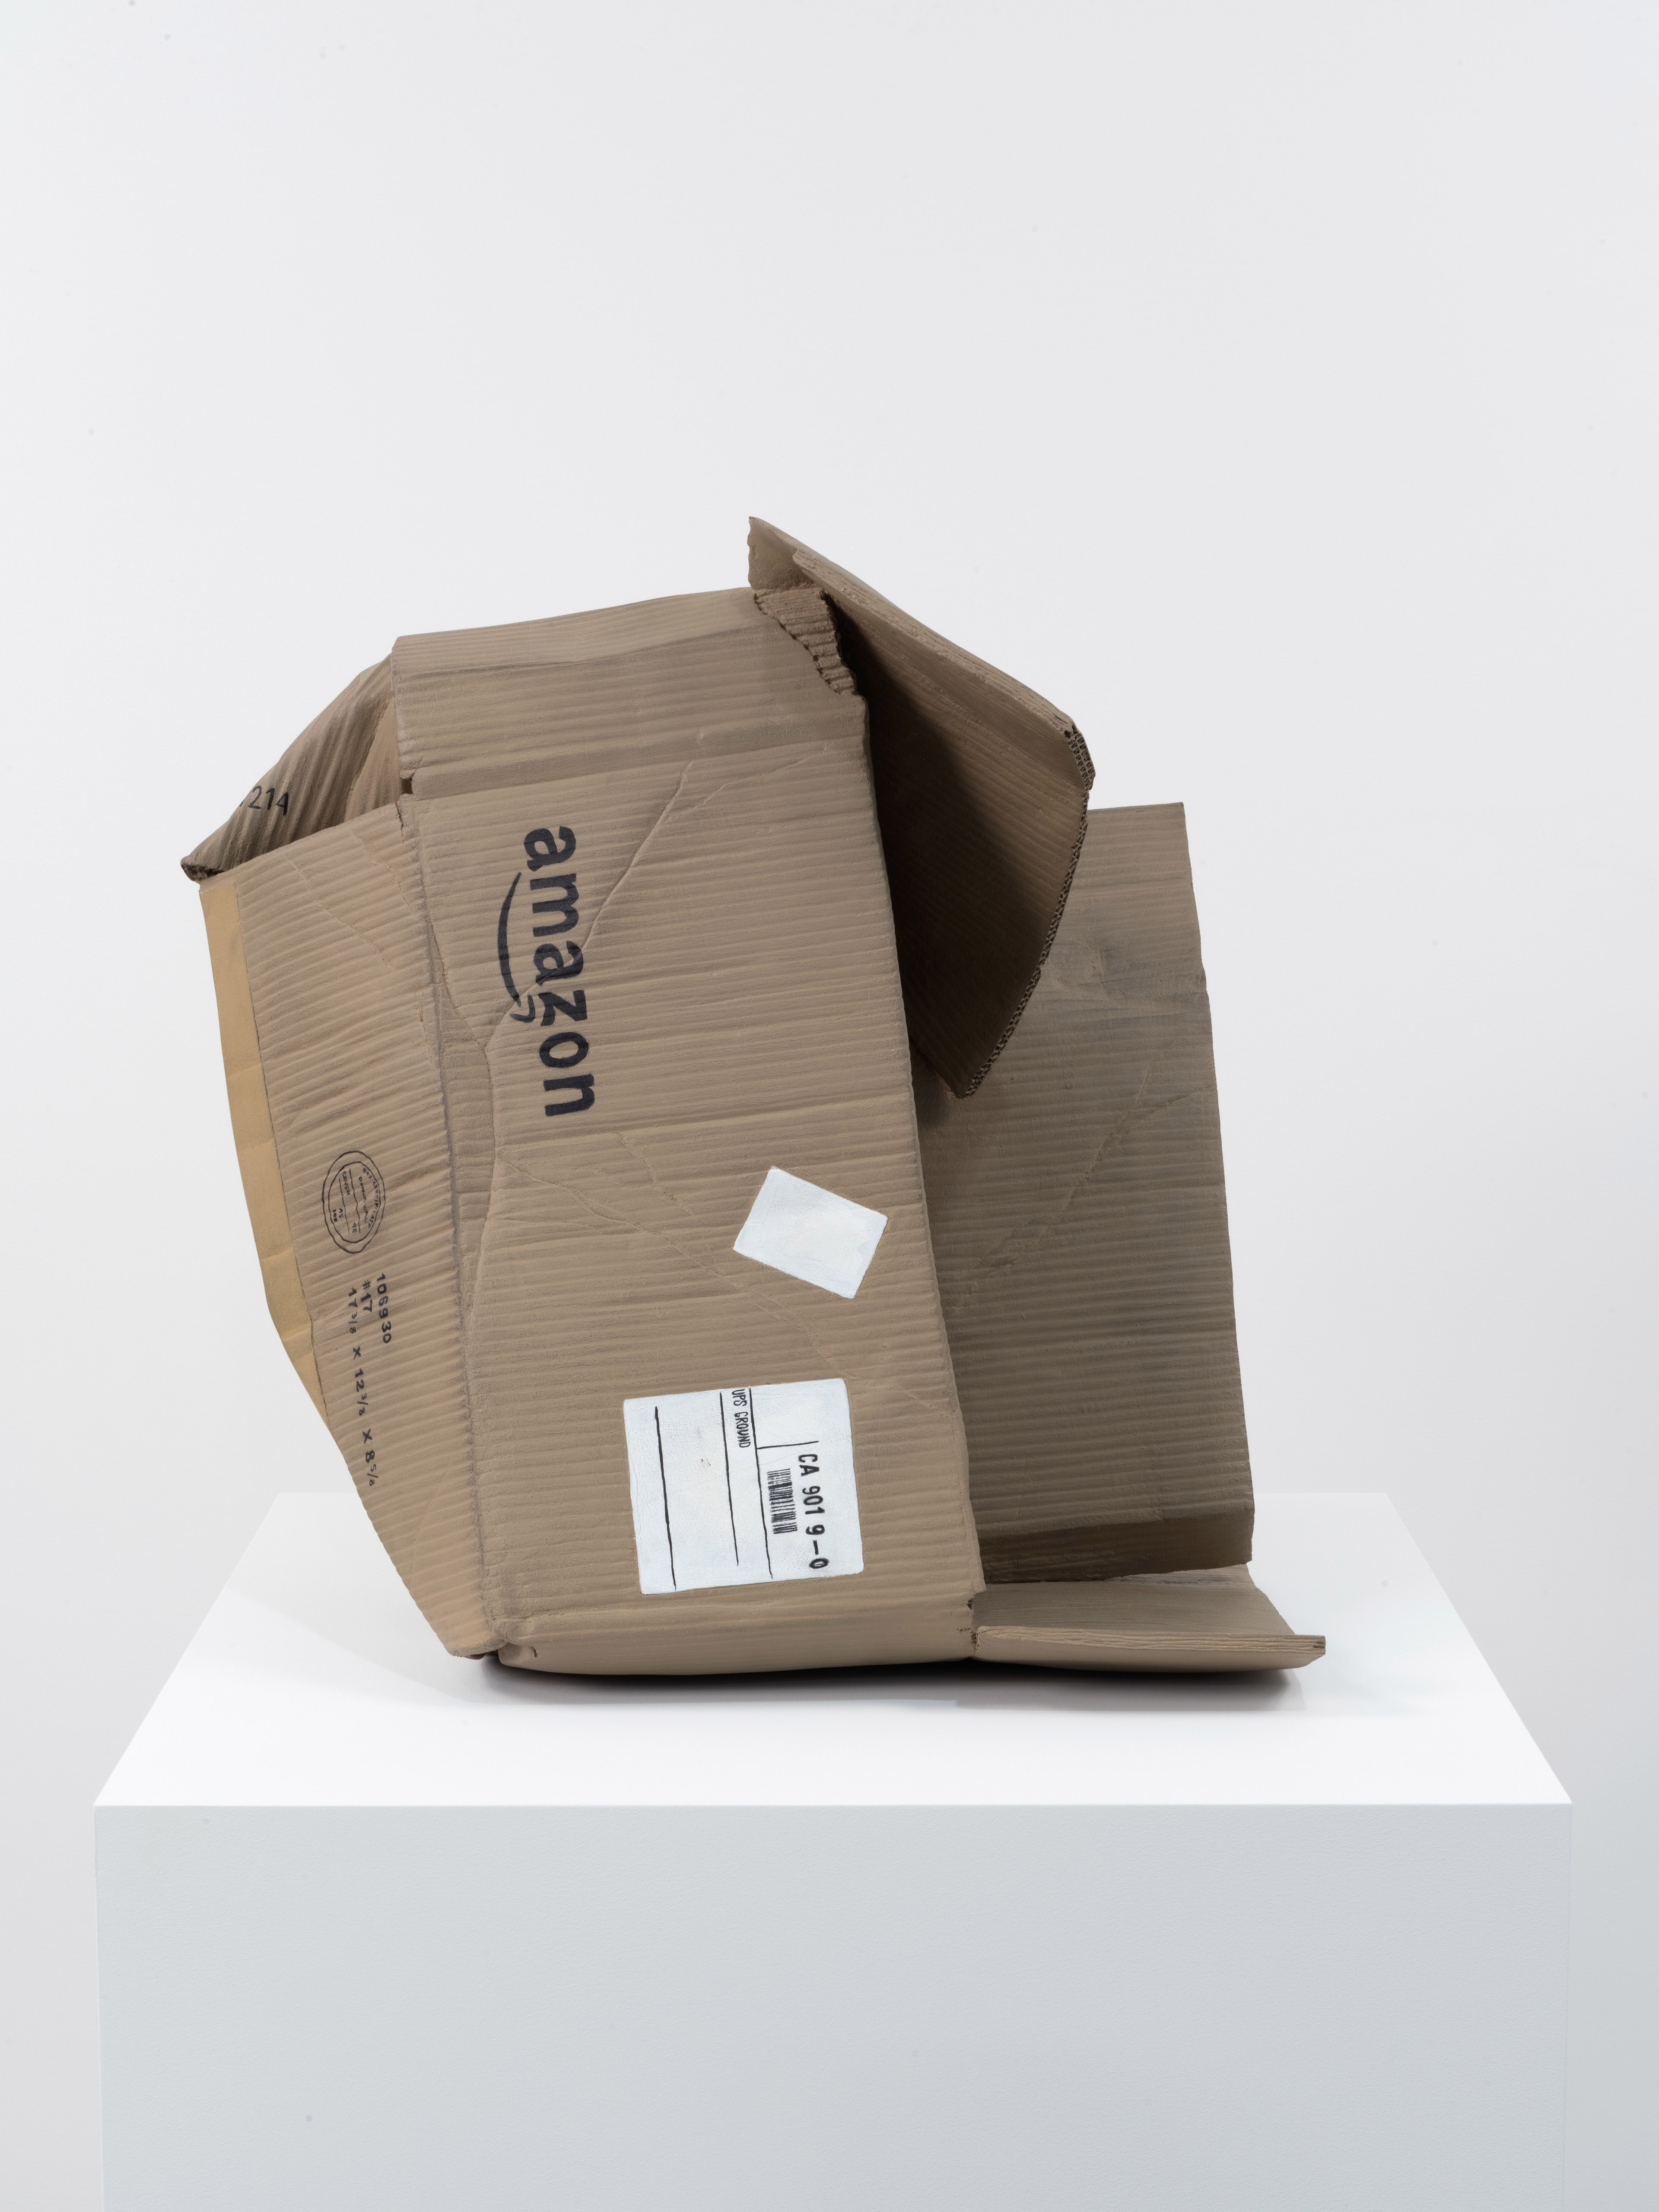 Crumbled Amazon delivery box